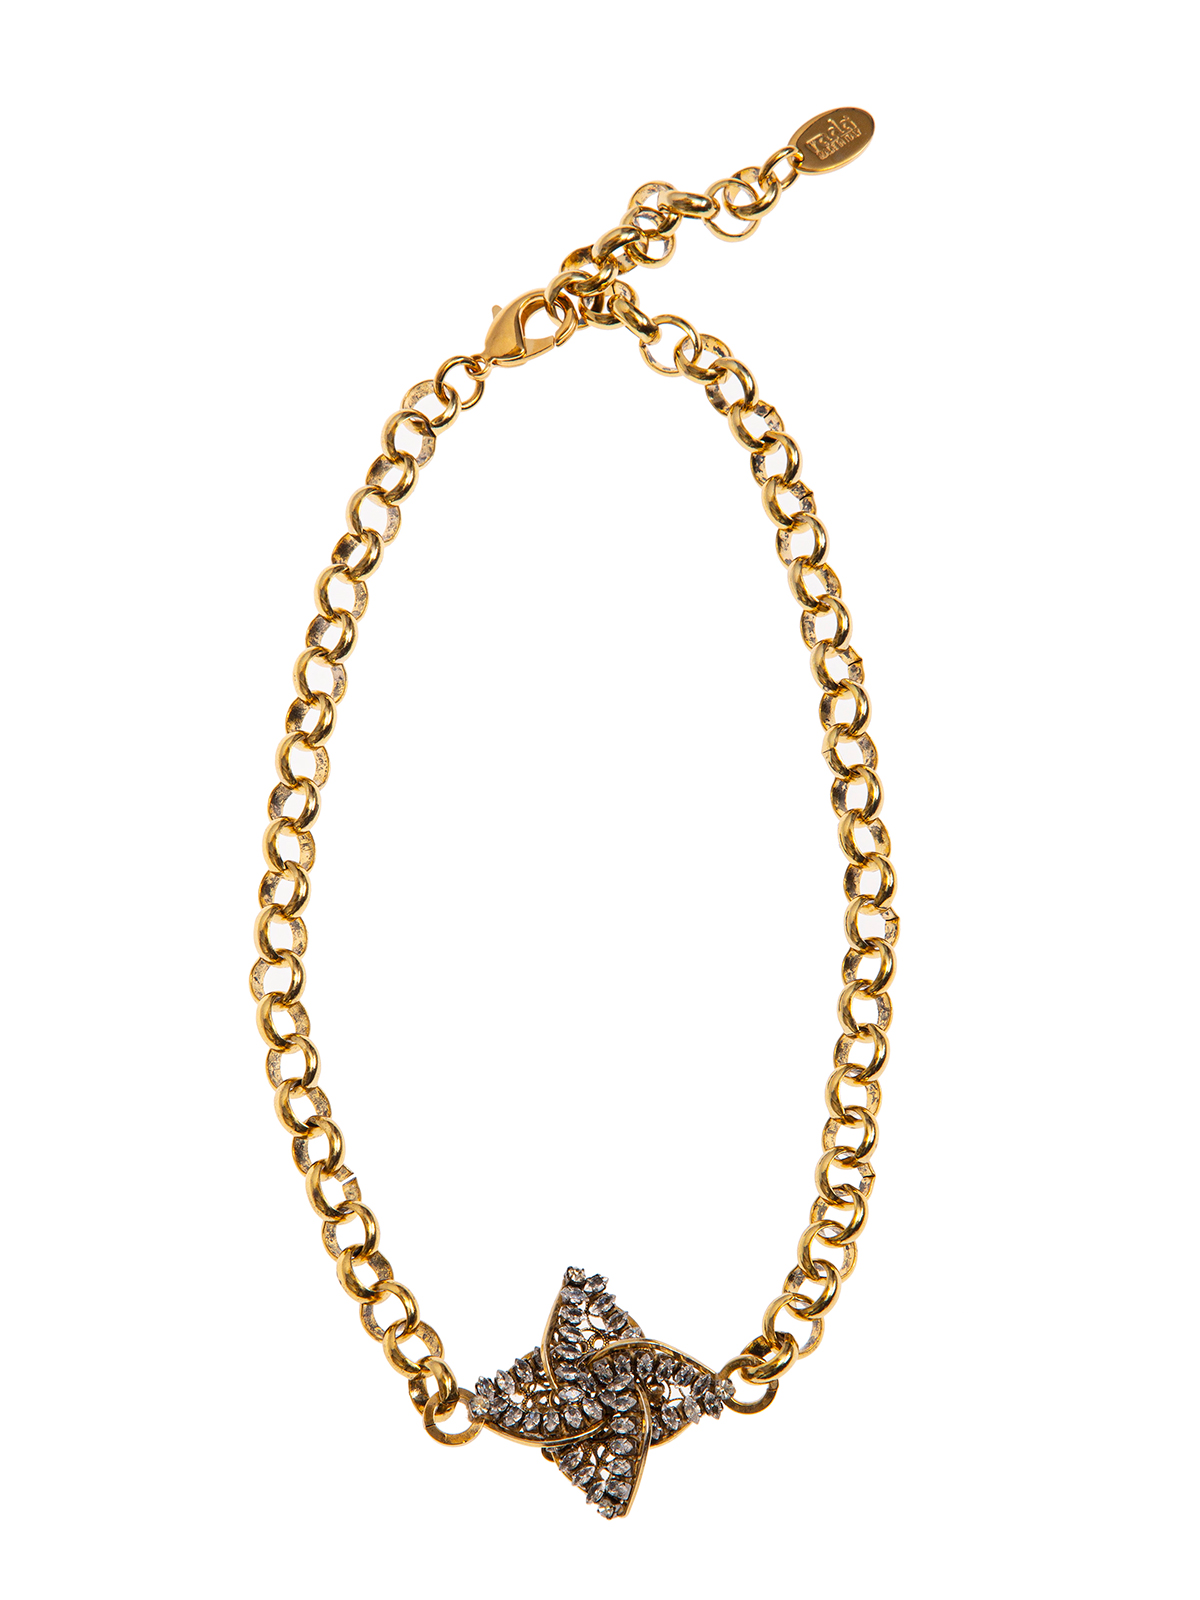 Chain necklace with  jewel helix-shaped central embroidered with stones